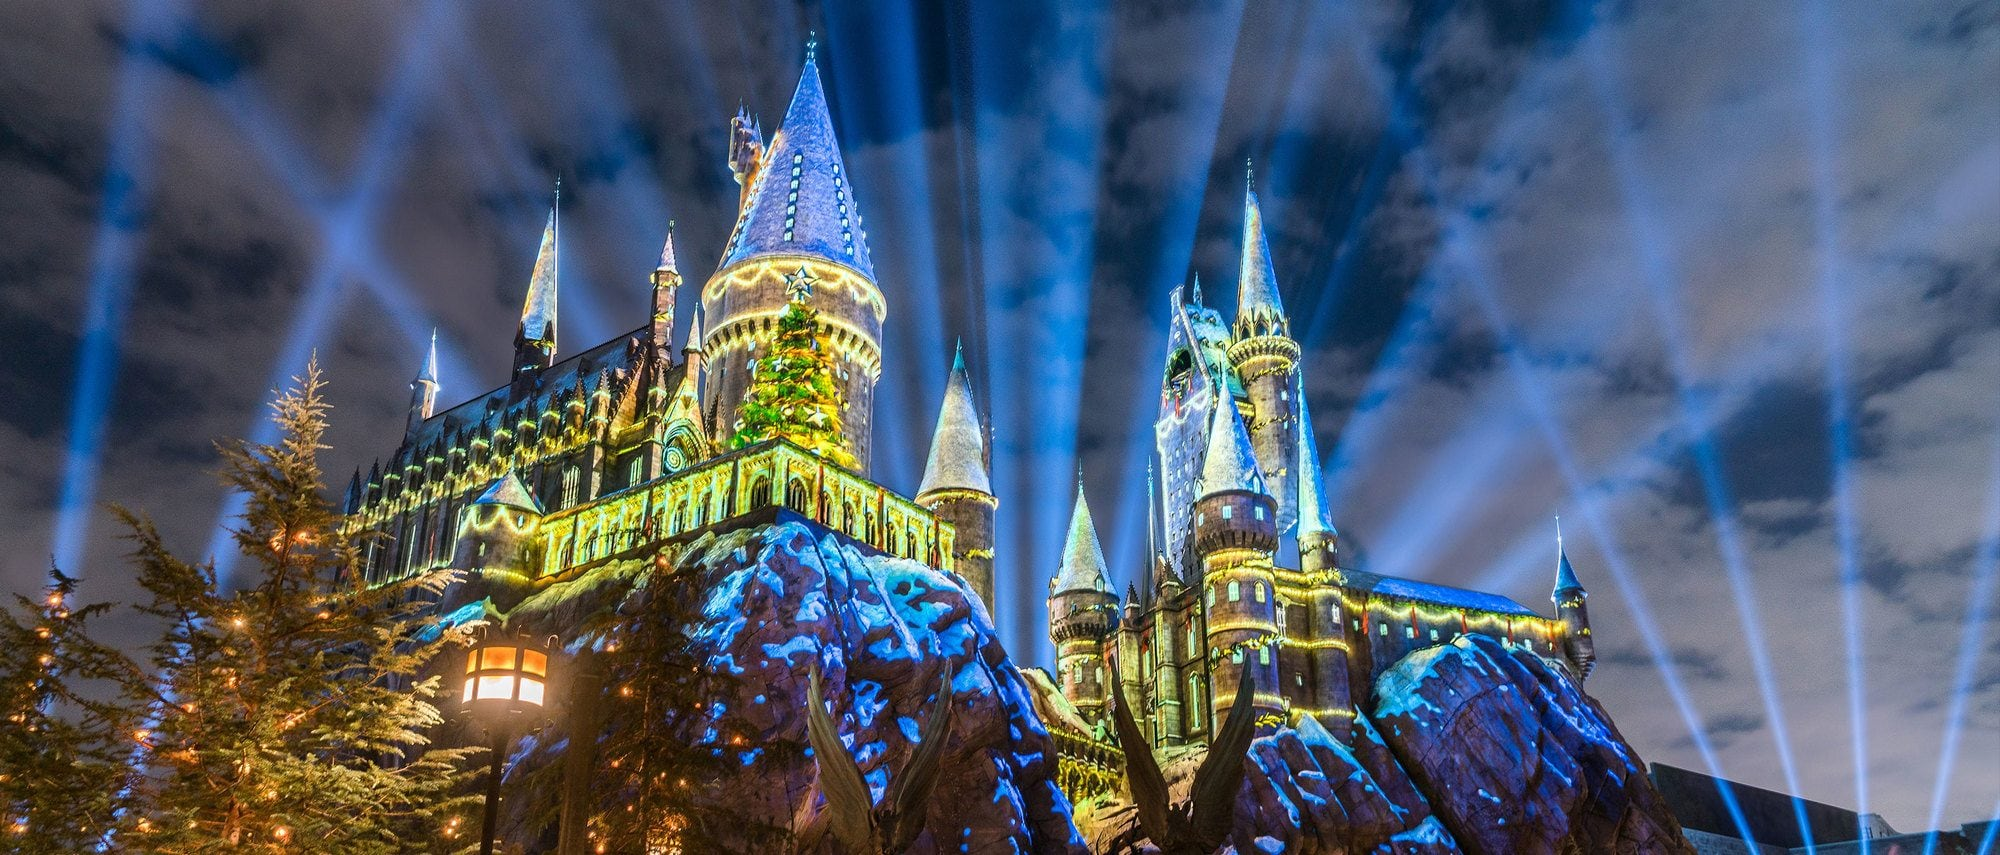 The Wizarding World of Harry Potter at Universal Studios Hollywood is especially enchanting during the winter holidays